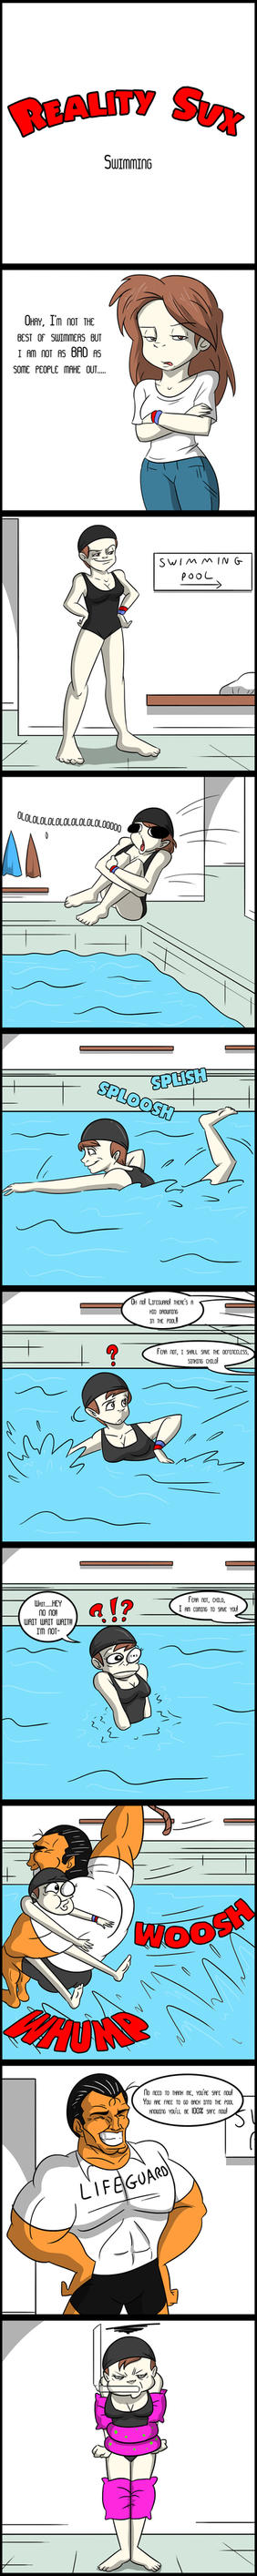 Reality Sux_Swimming by TFSubmissions